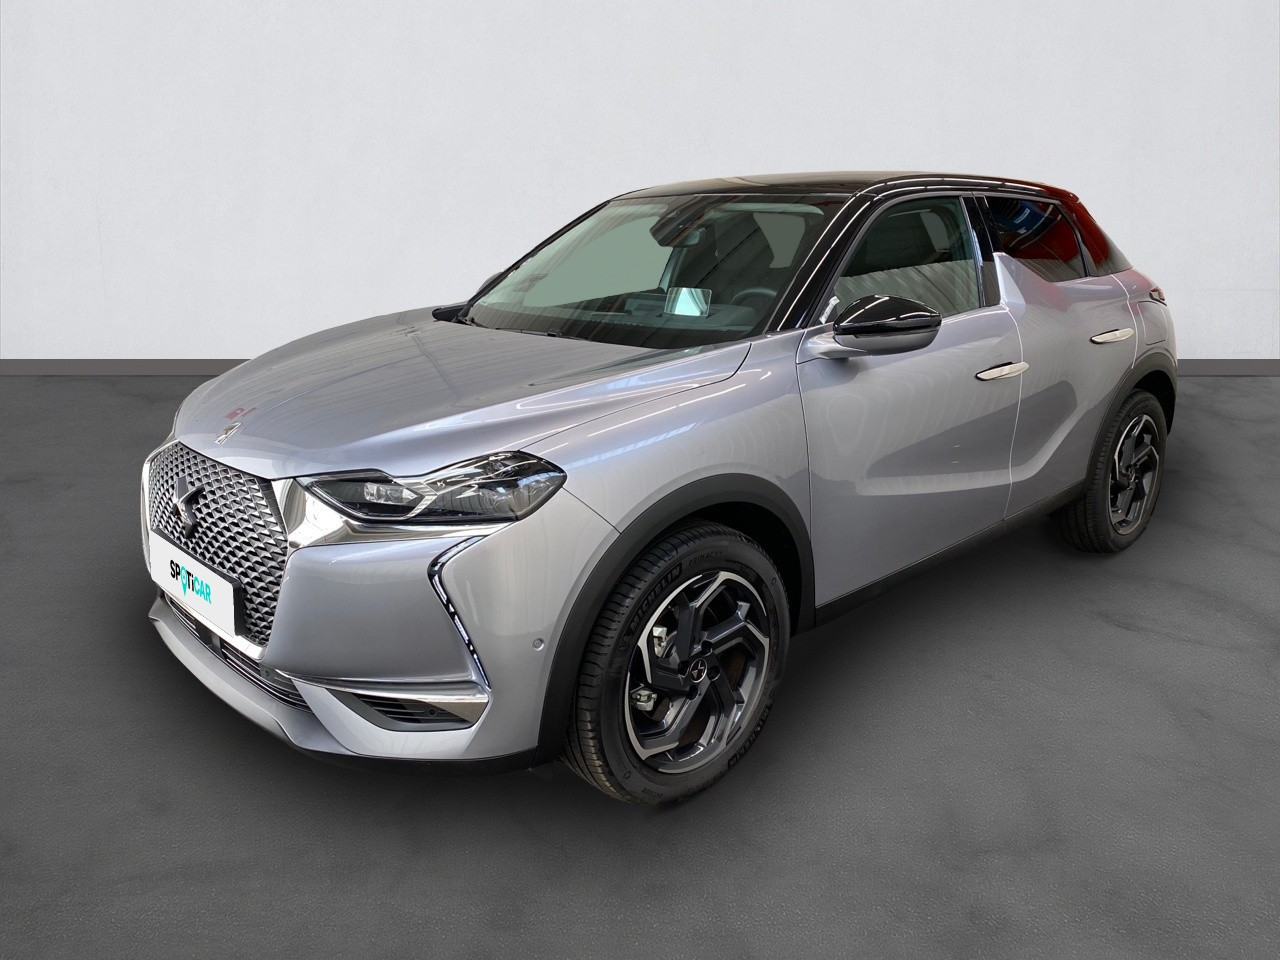 DS 3 CROSSBACK DS 3 CROSSBACK BLUEHDI 130 S&S EAT8 GRAND CHIC